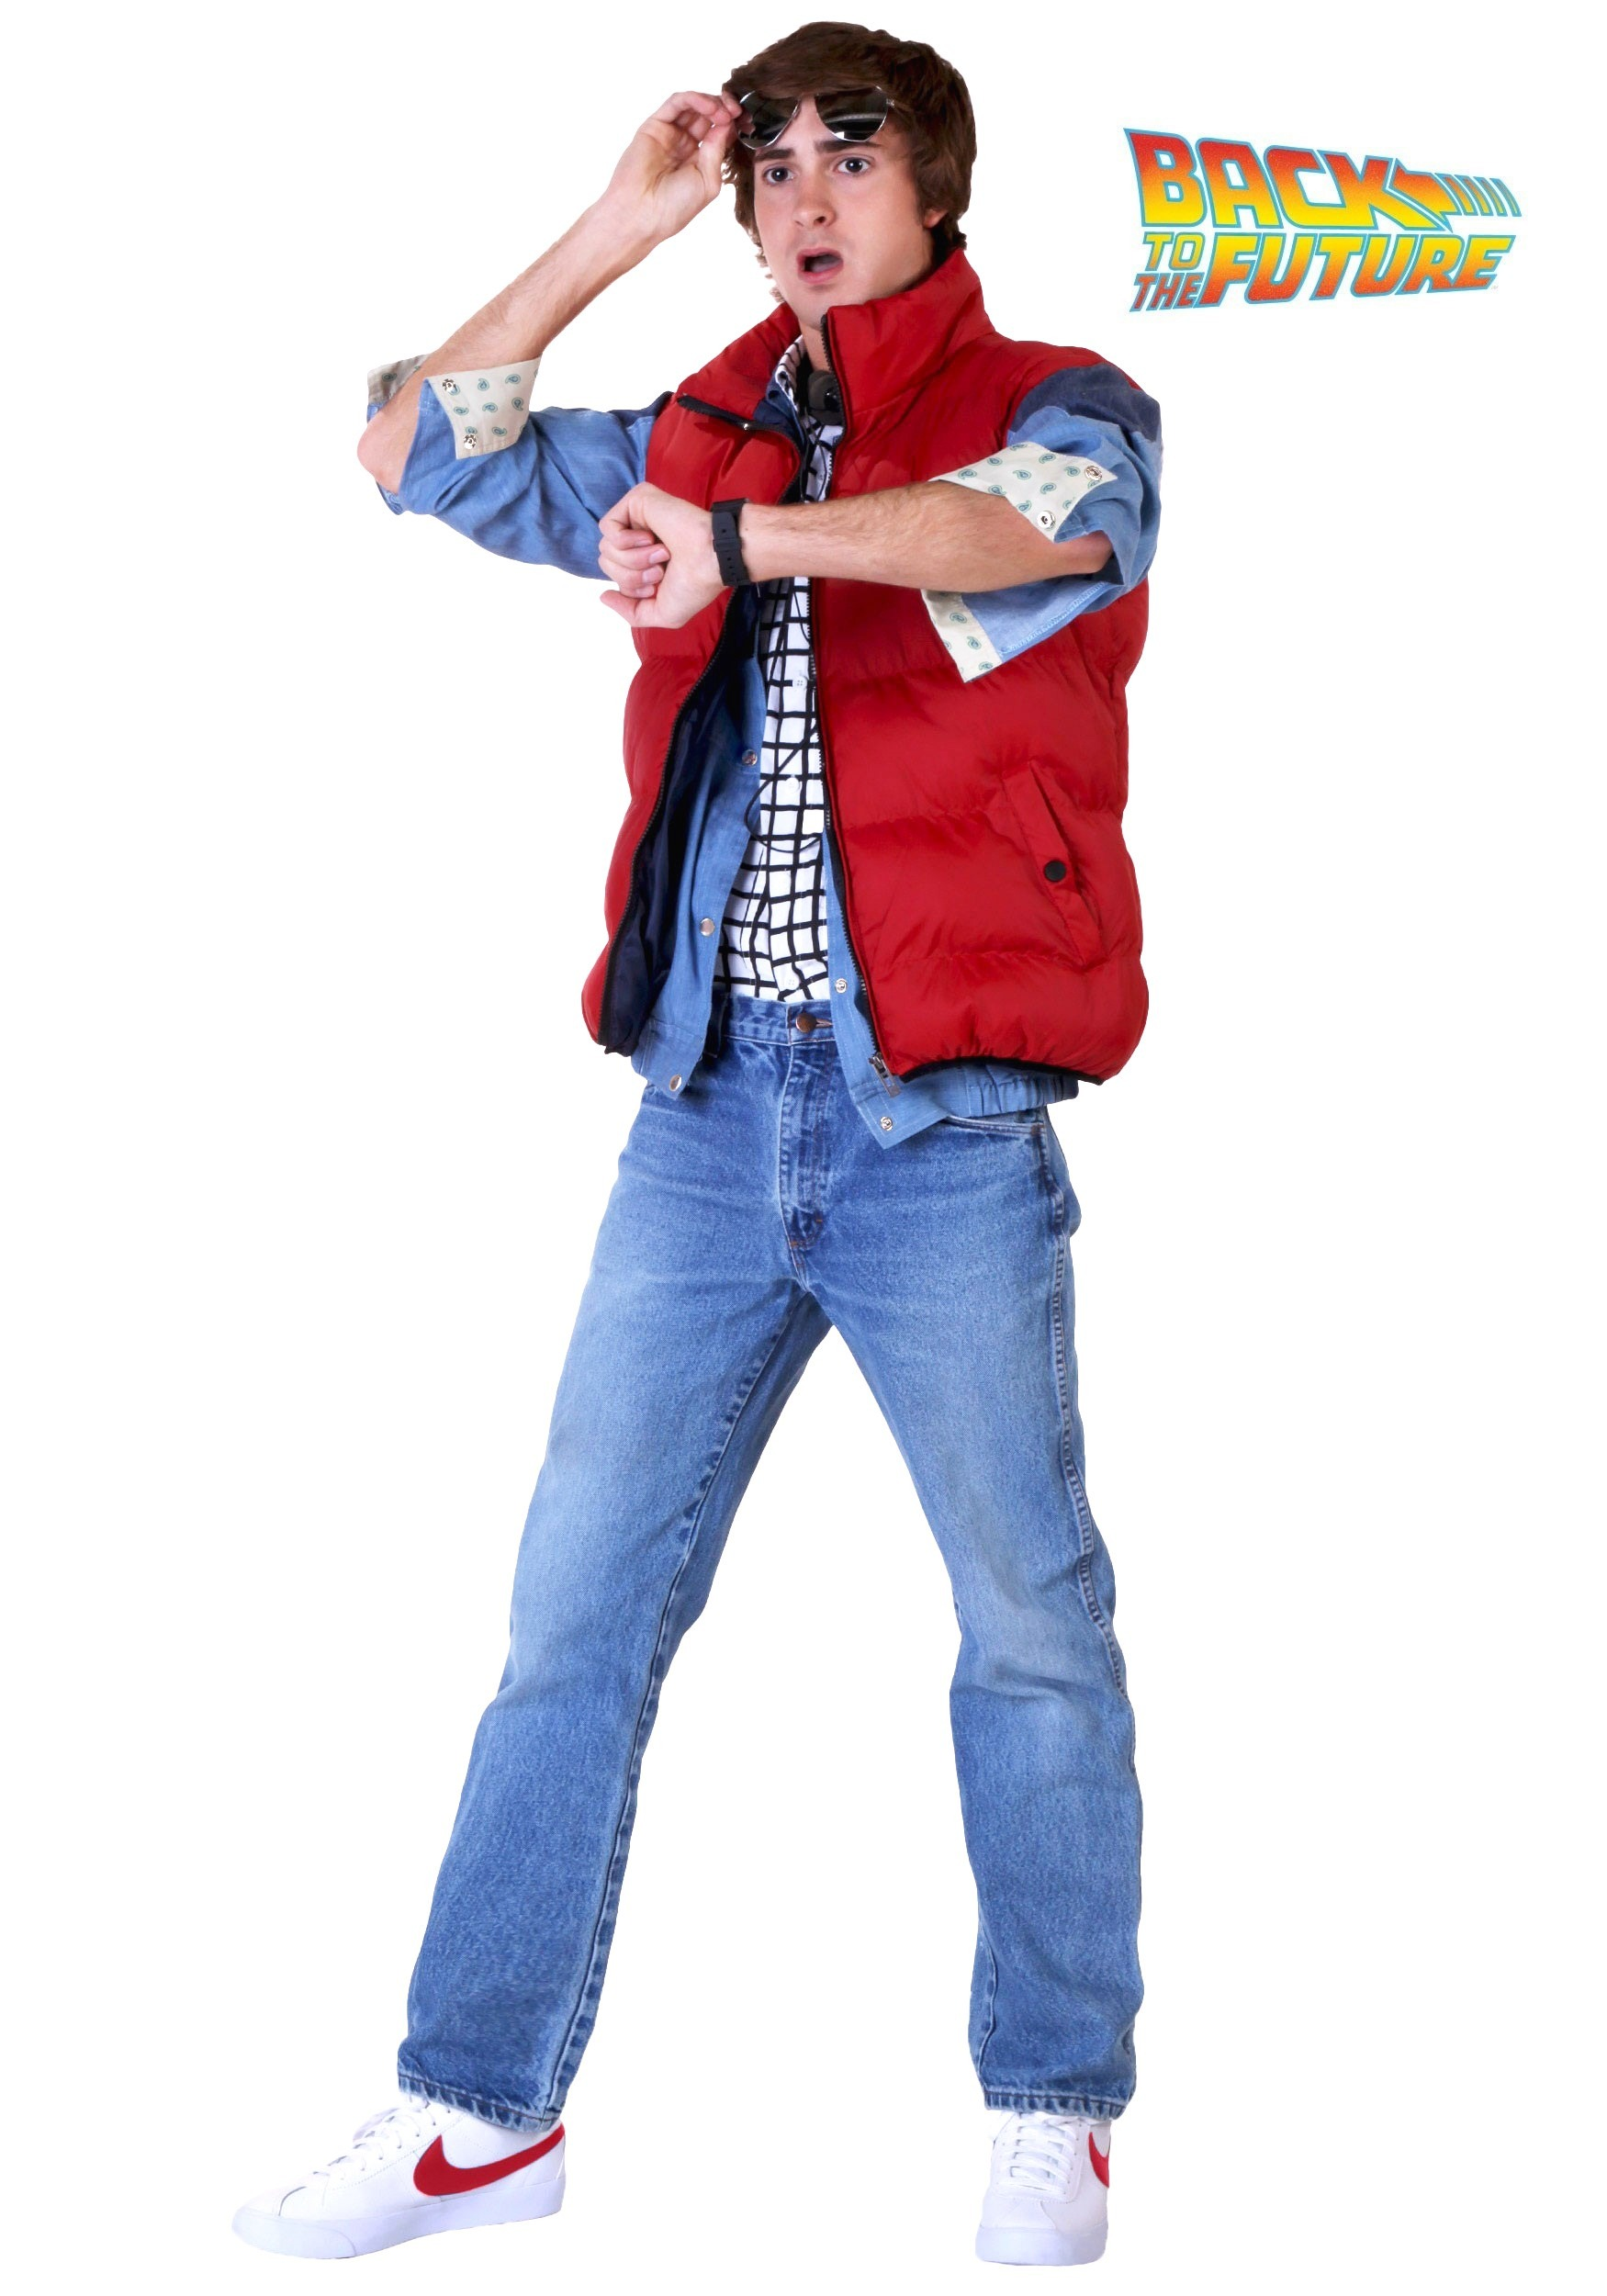 8986ad1667dfe Back to the Future Marty McFly Costume Update1